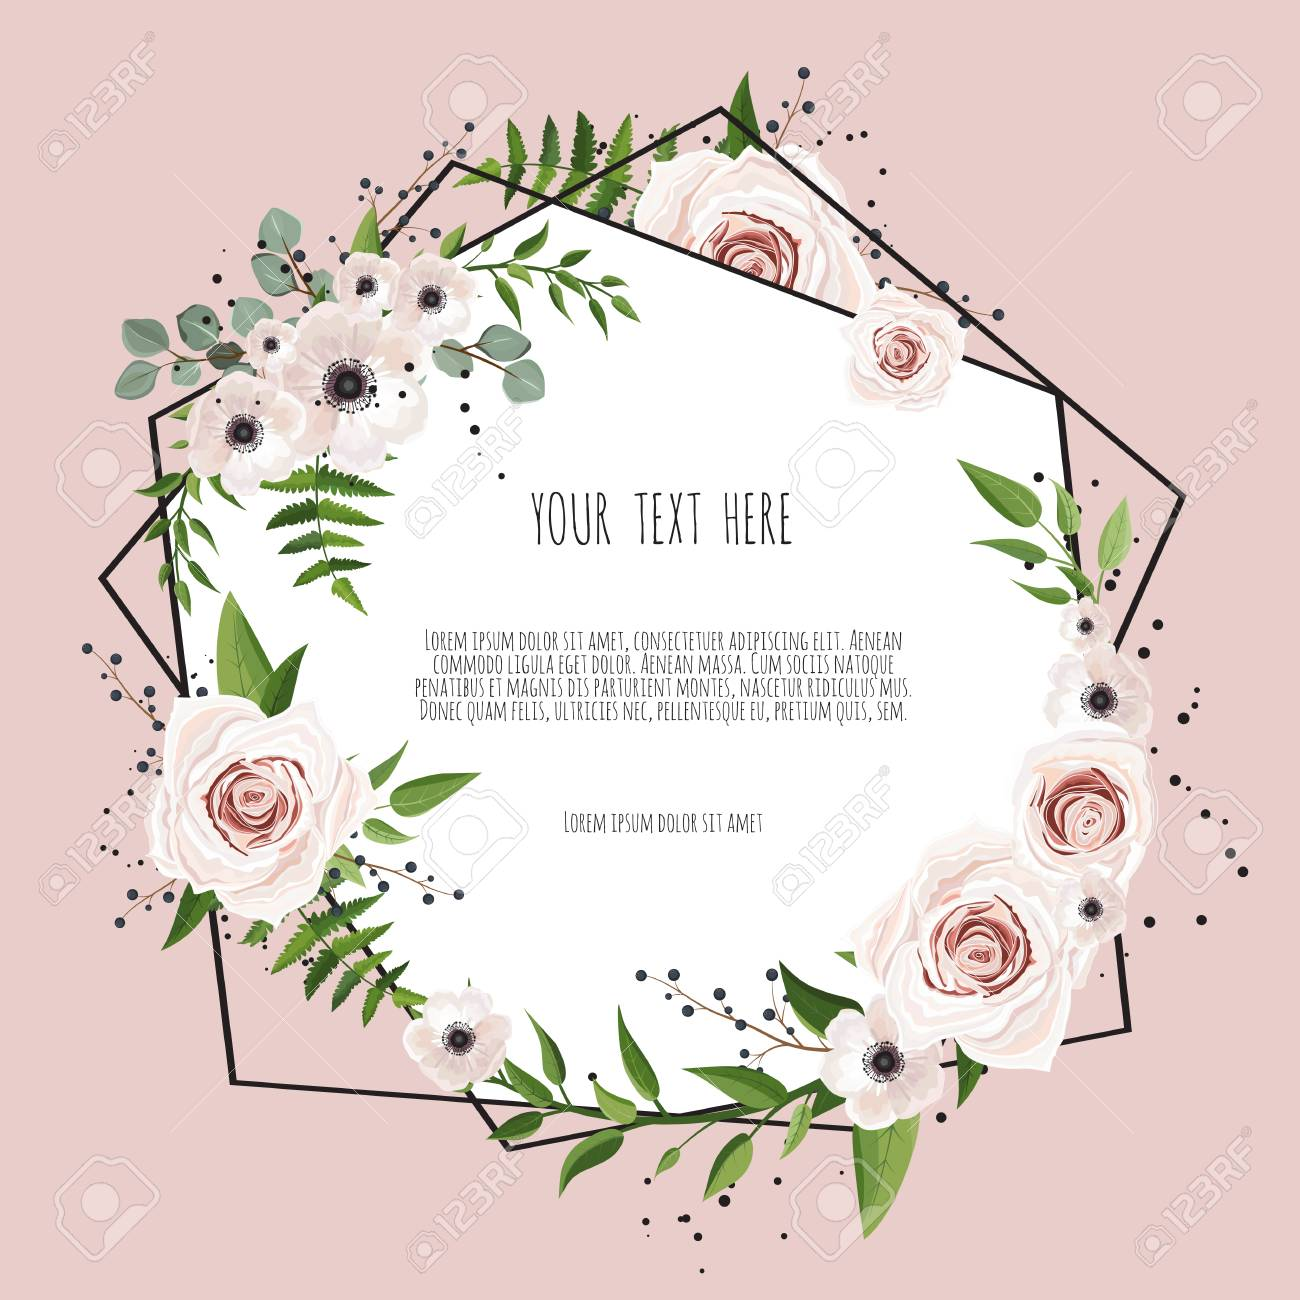 Geometric botanical vector design frame. Natural spring wedding card. All elements are isolated and editable - 97398720